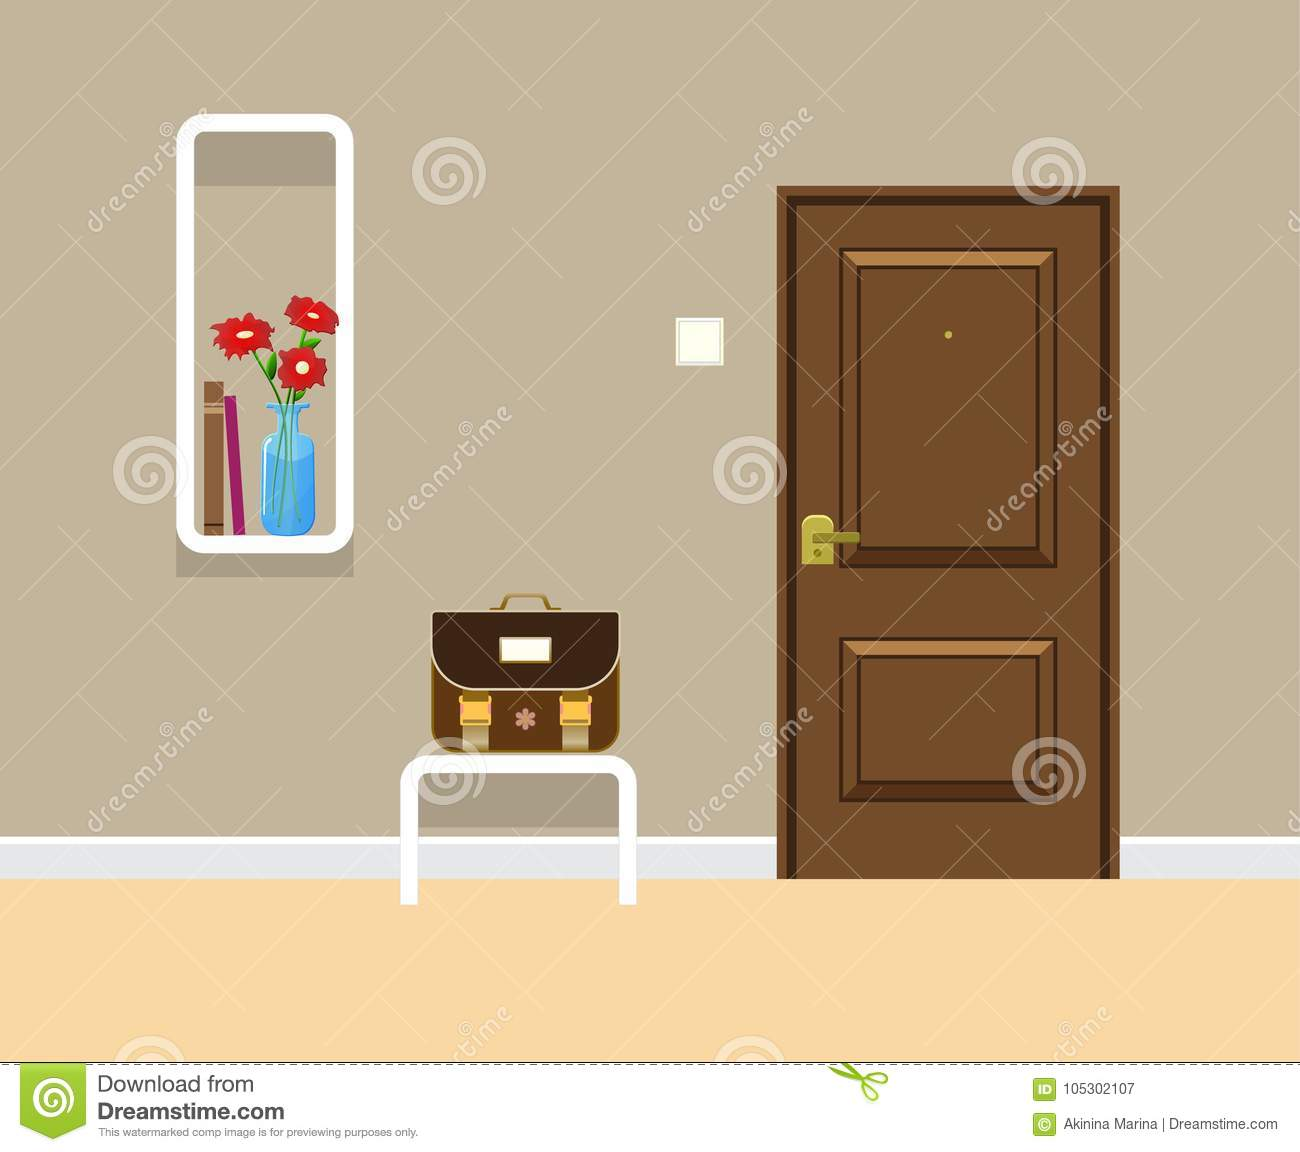 Colored Flat Vector Design With Shadow Entrance Door Rectangle Bookshelf On The Wall